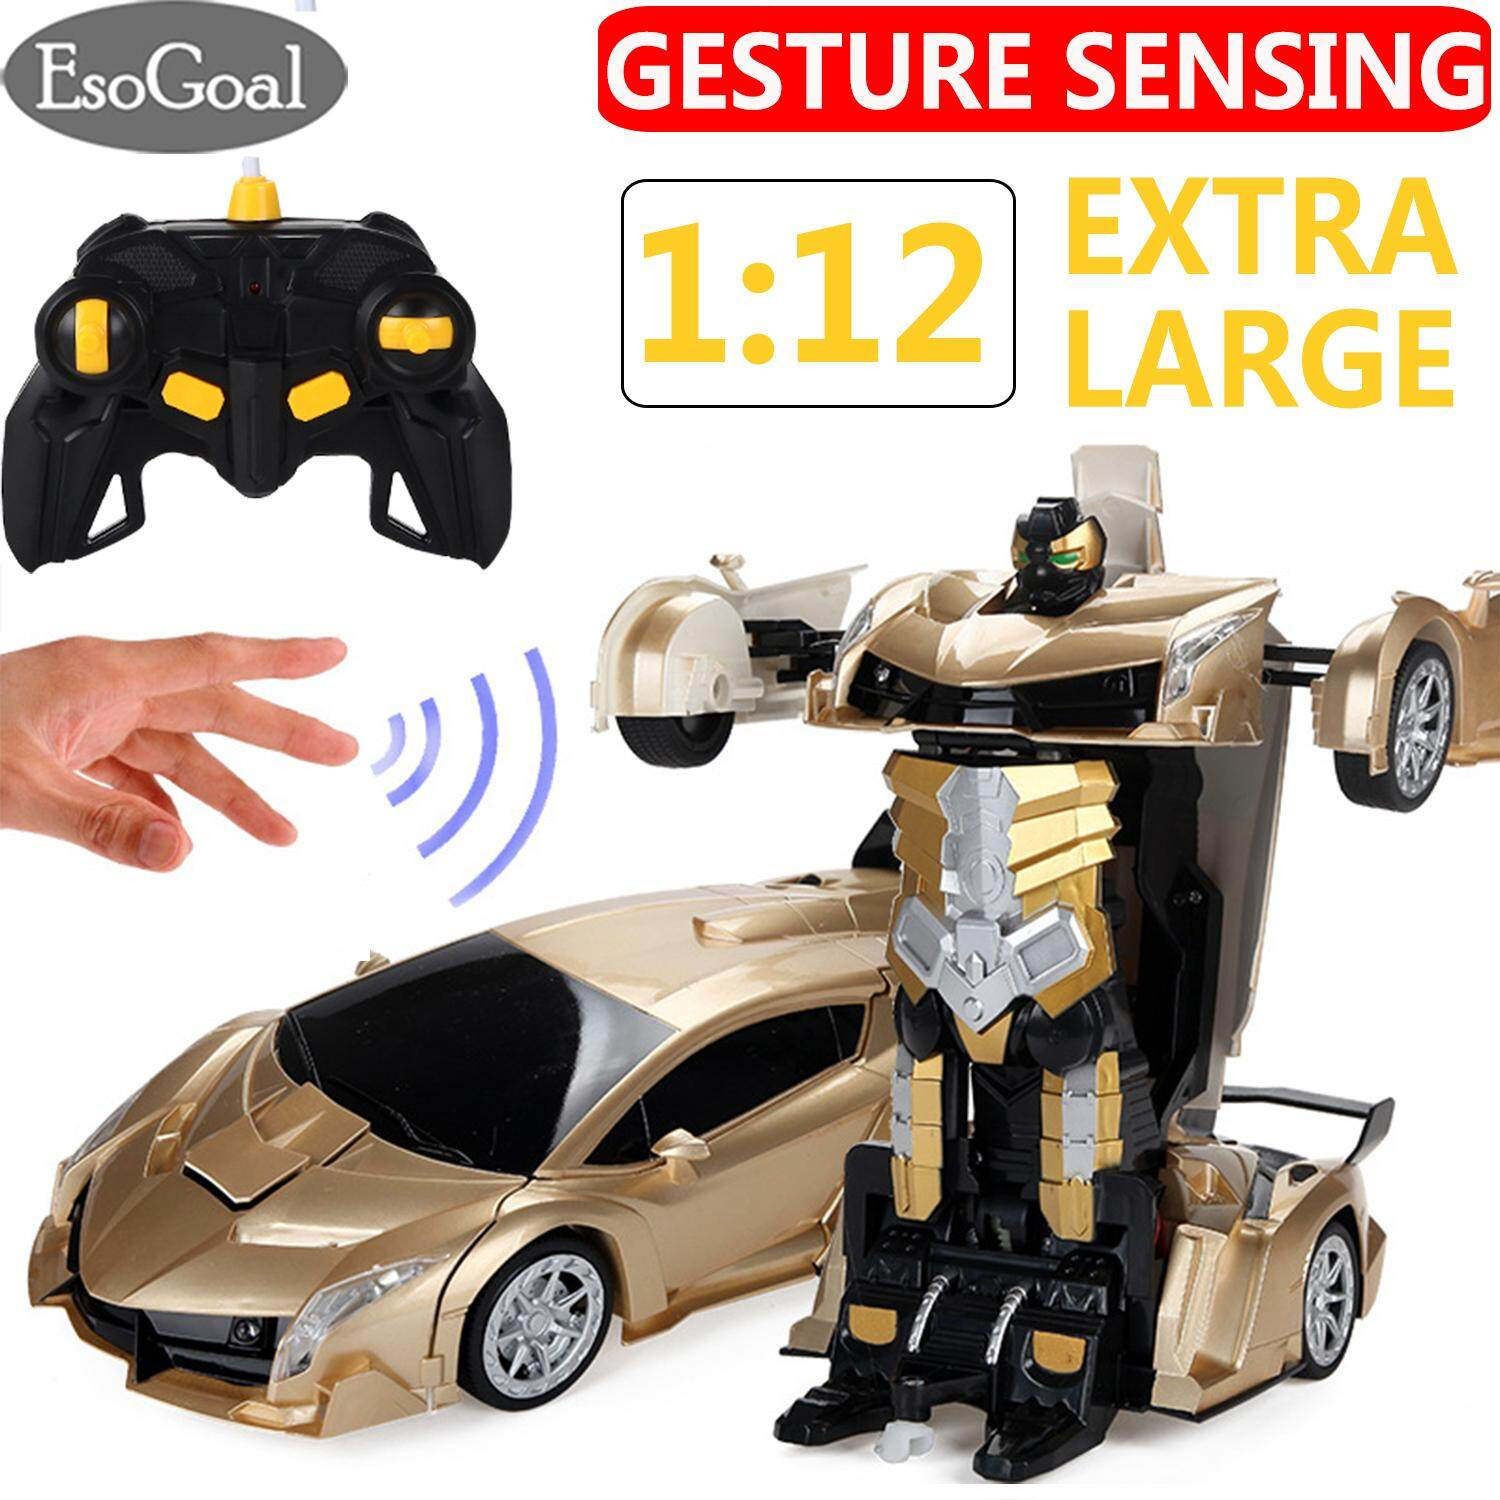 Rc Vehicles Buy At Best Price In Malaysia Lazada F1 Receiver Board Helicopter Spare Parts Circuit Hot Sell Esogoal Transformer Toys Electric Drift Car Remote Control Toy Cars